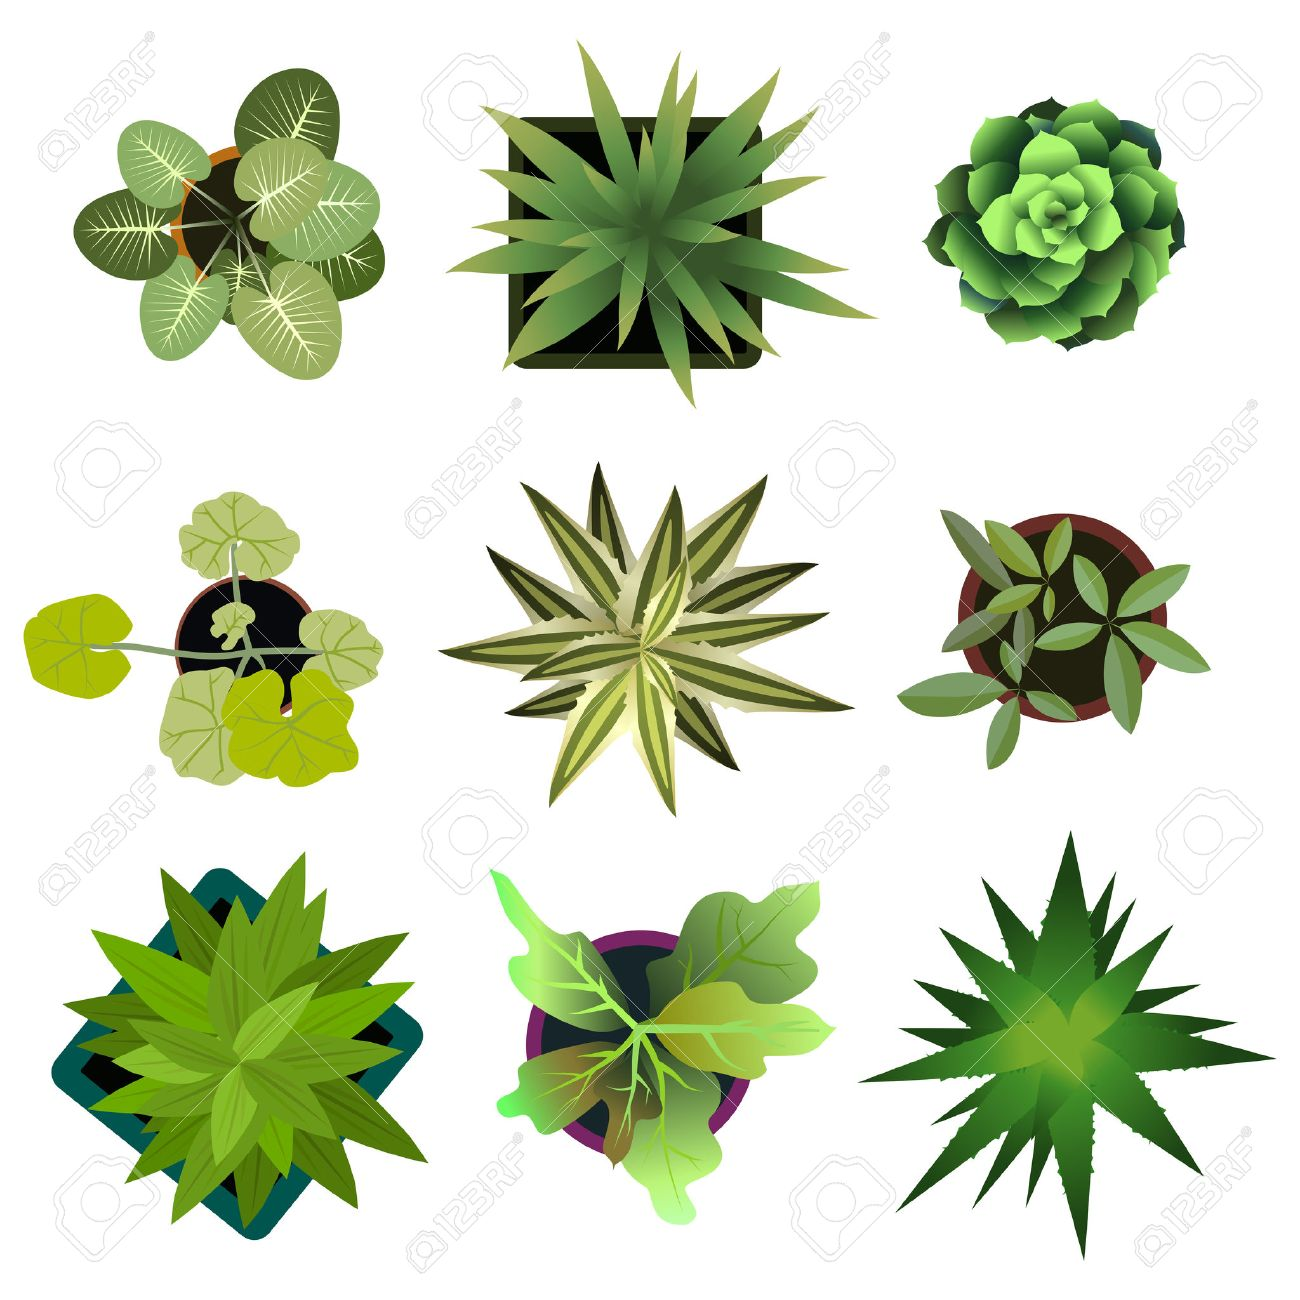 Top view. plants Easy copy paste in your landscape design projects or architecture plan. Isolated flowers on white background. Vector - 58520987